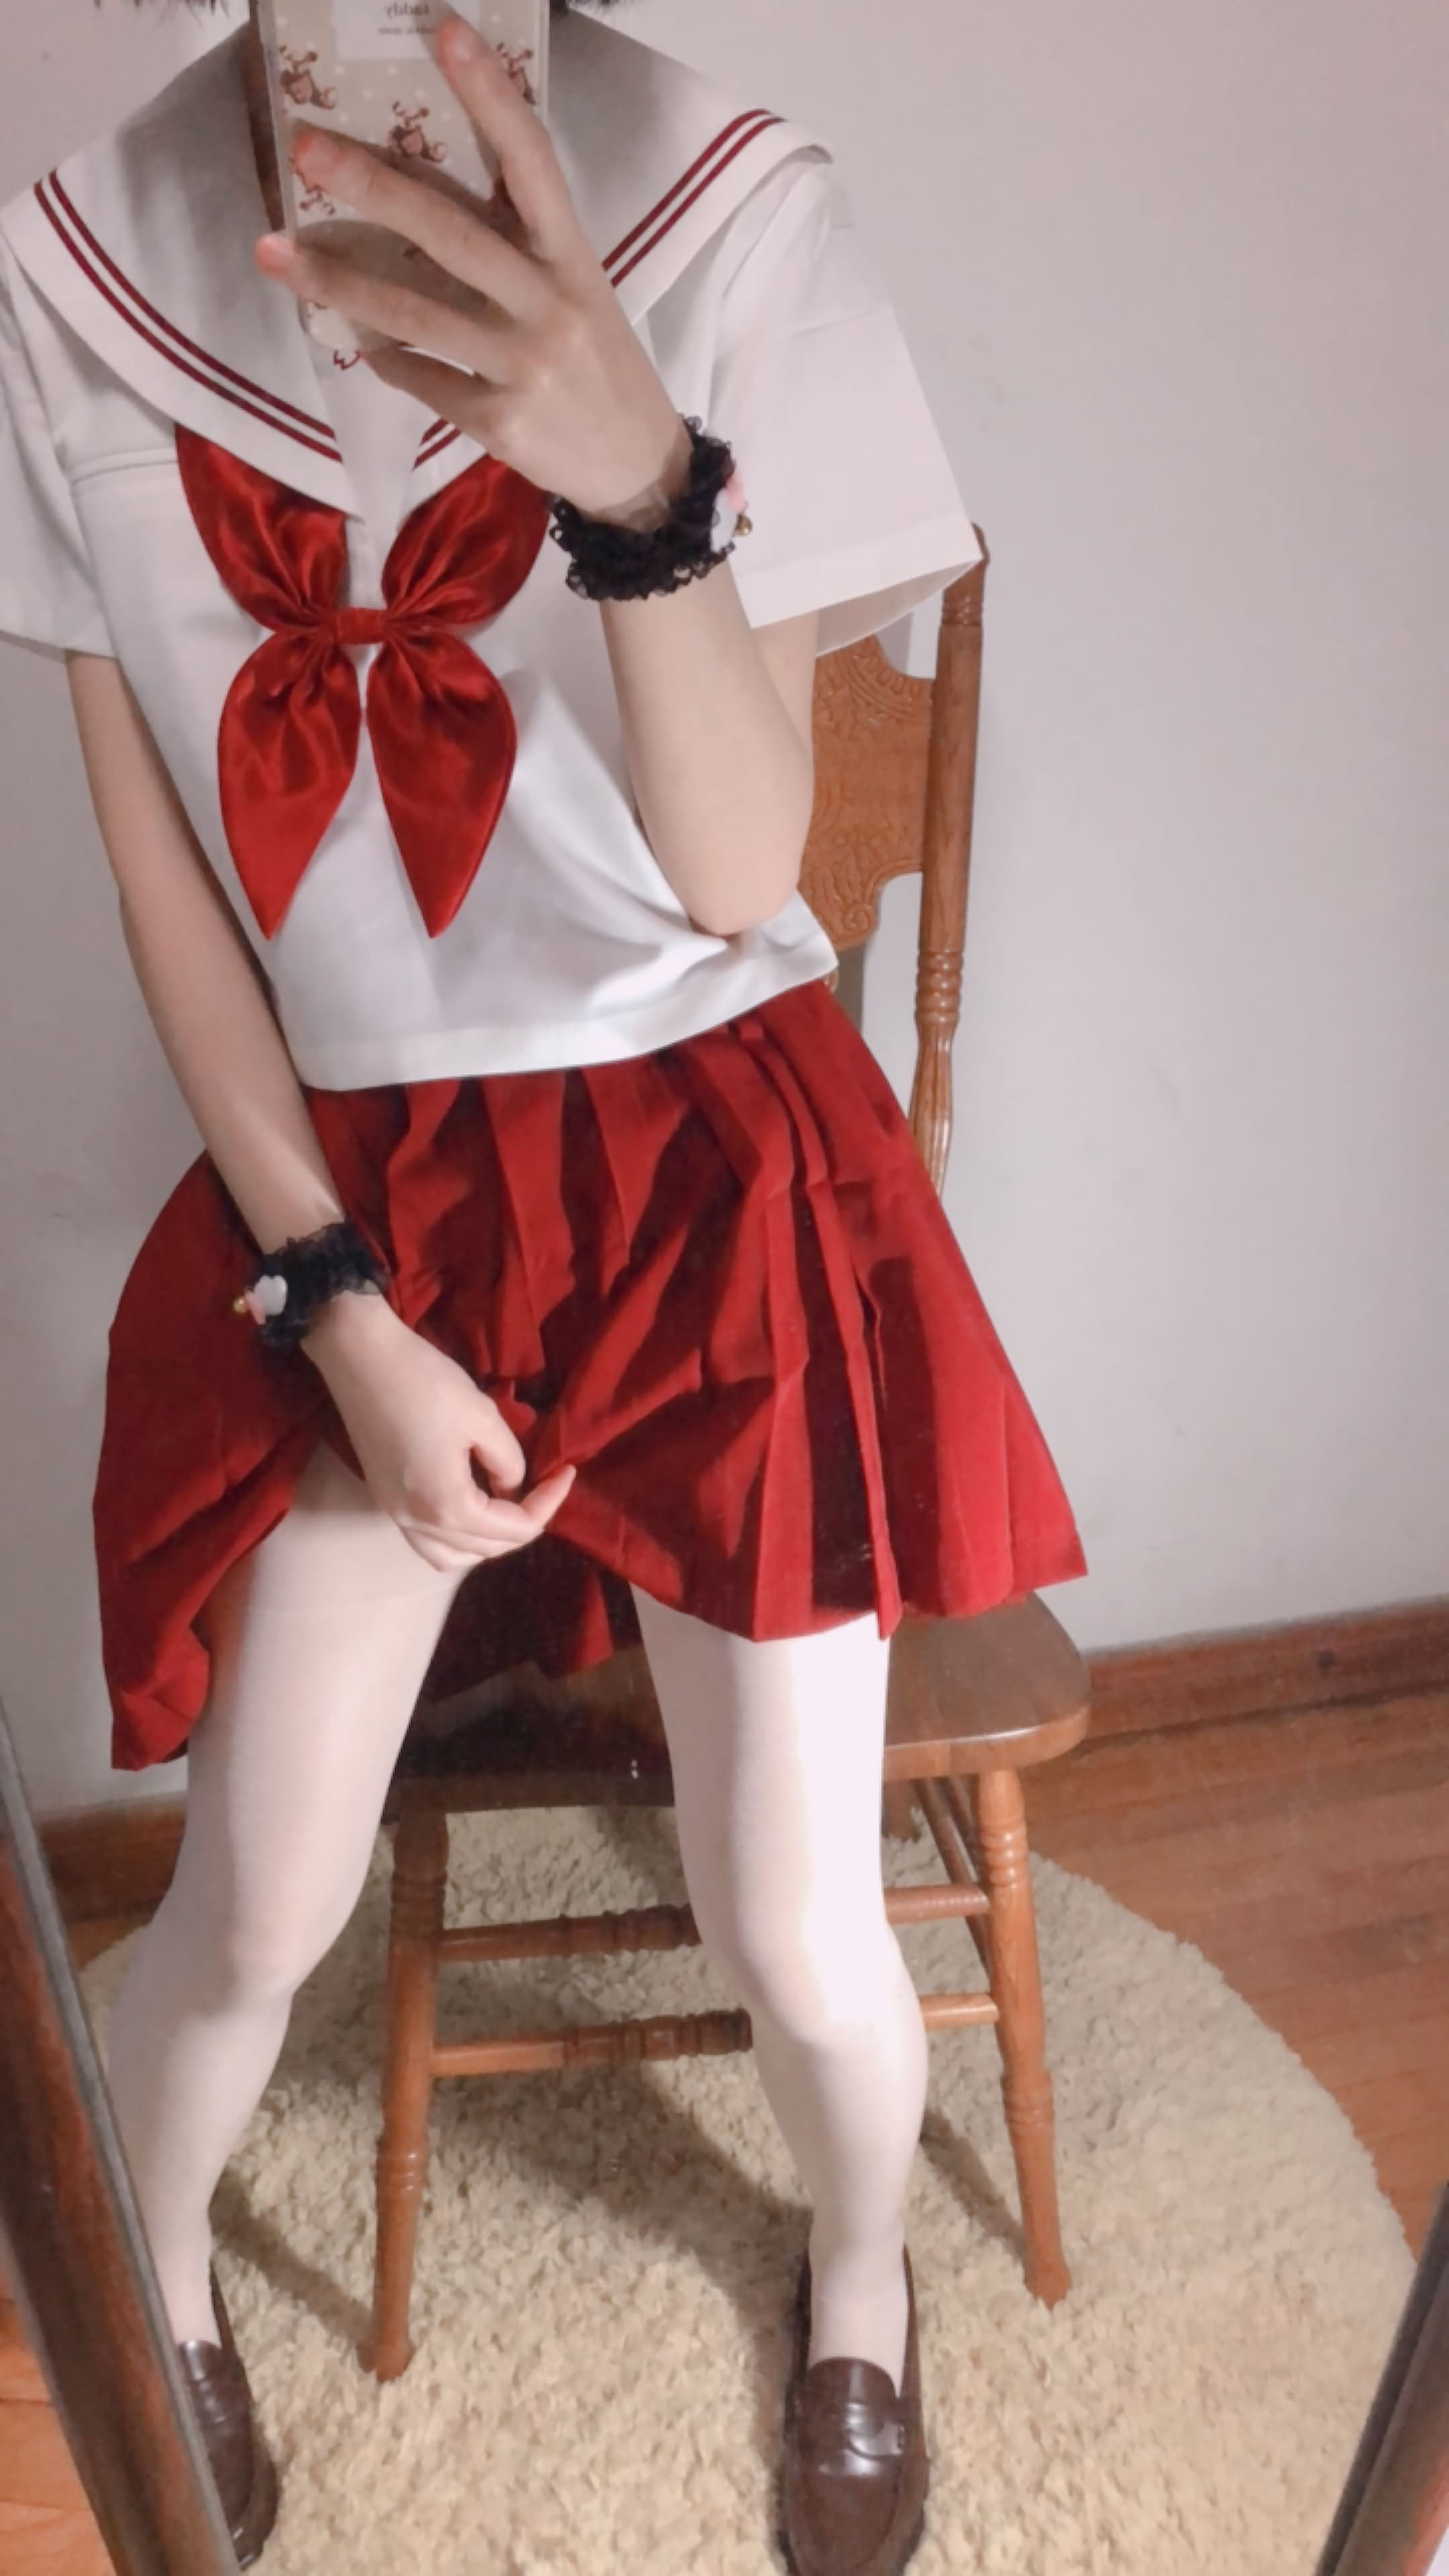 33 - Cosplay red JK uniform white stockings sweet pussy butt 小结巴-红色jk制服白丝 95P